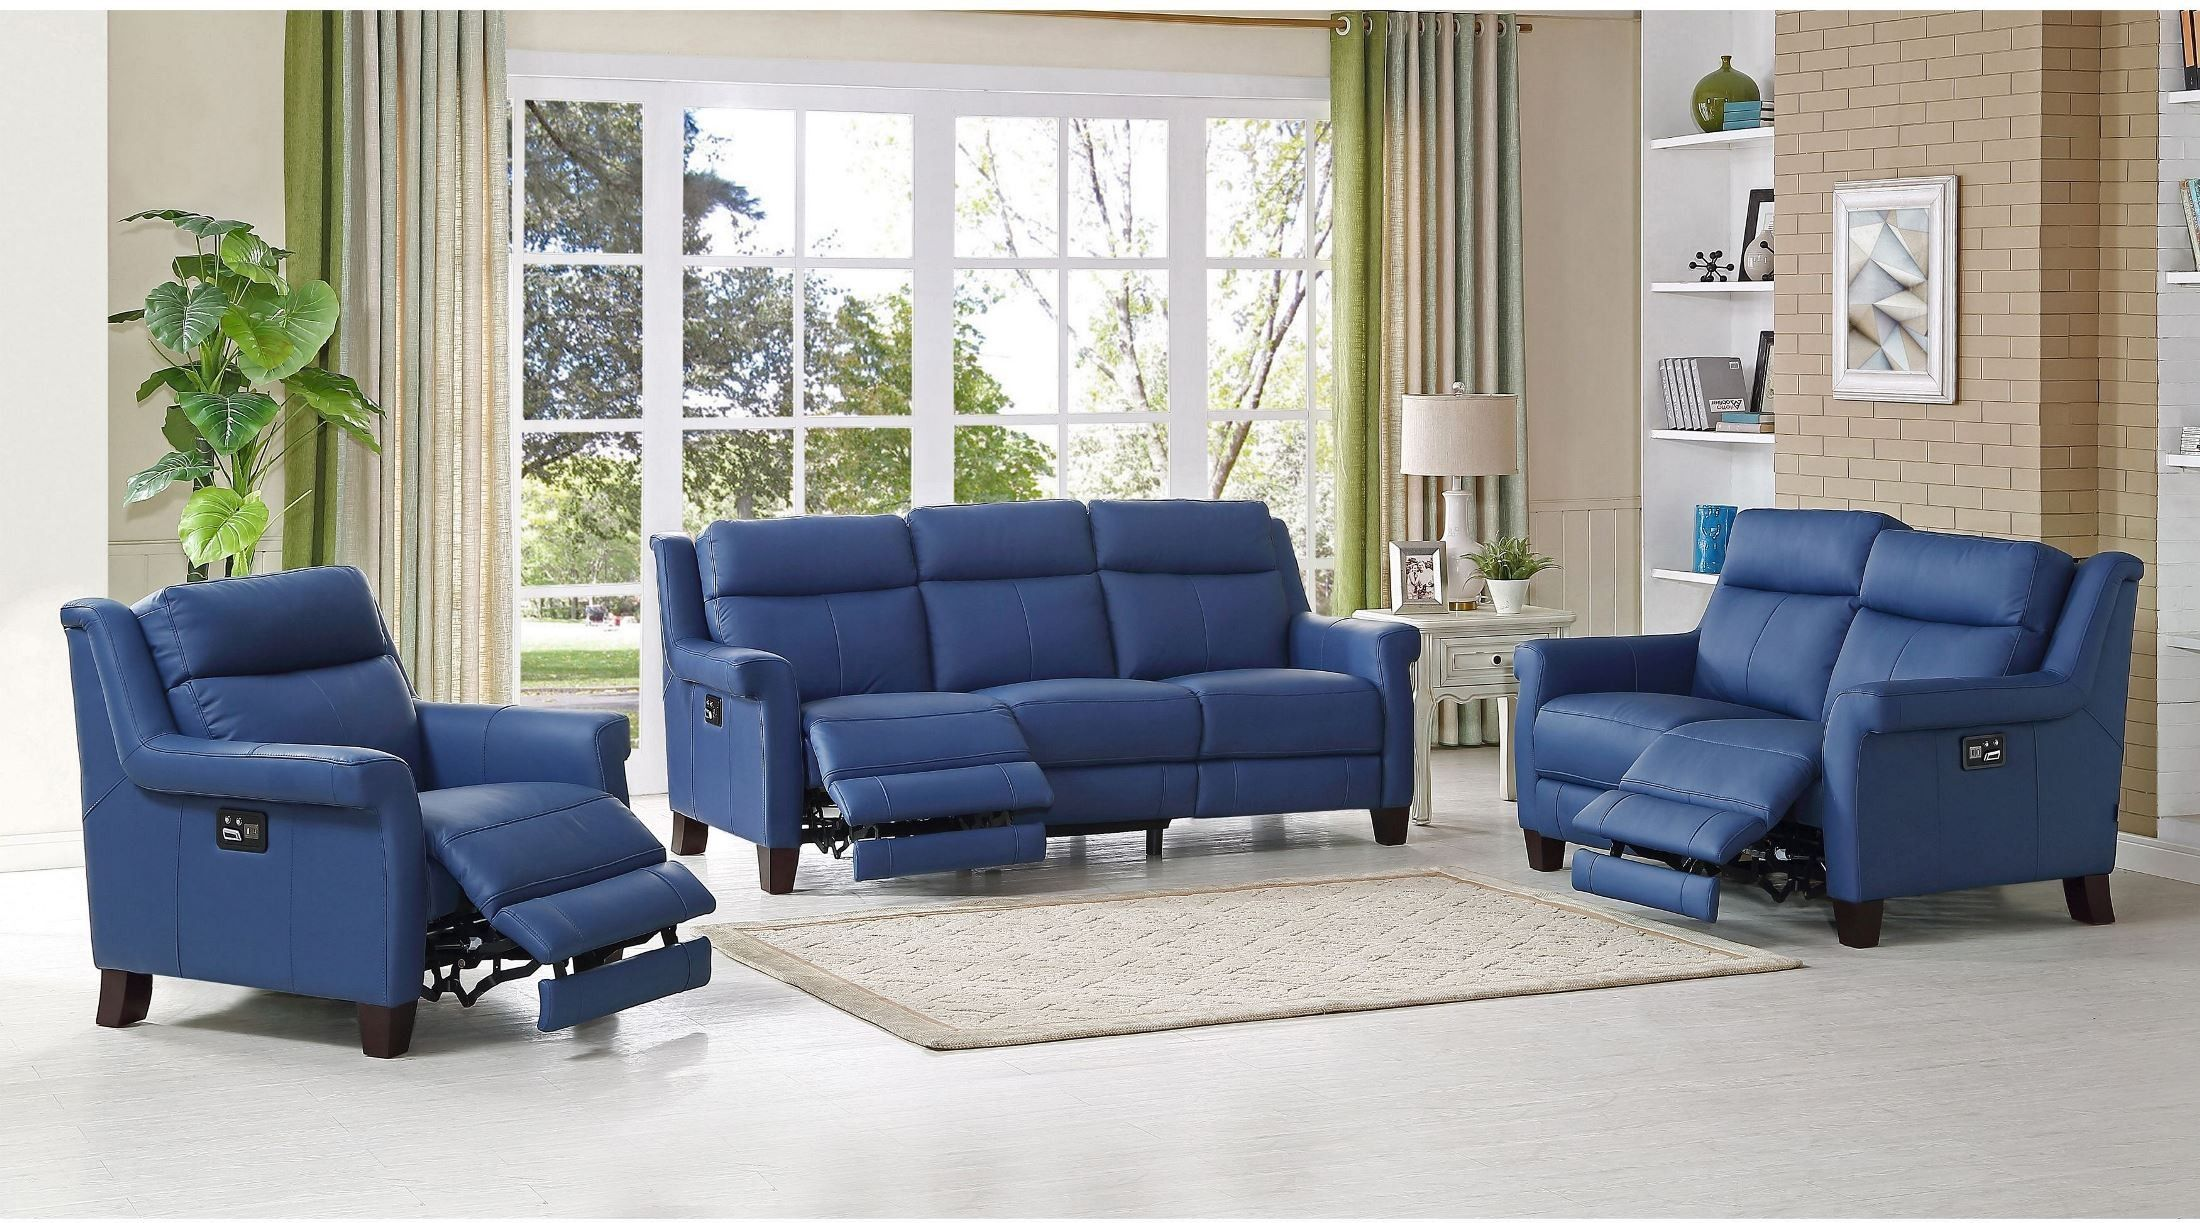 Dolce Blue Power Reclining Living Room Set Chris House - Living room sets with recliners